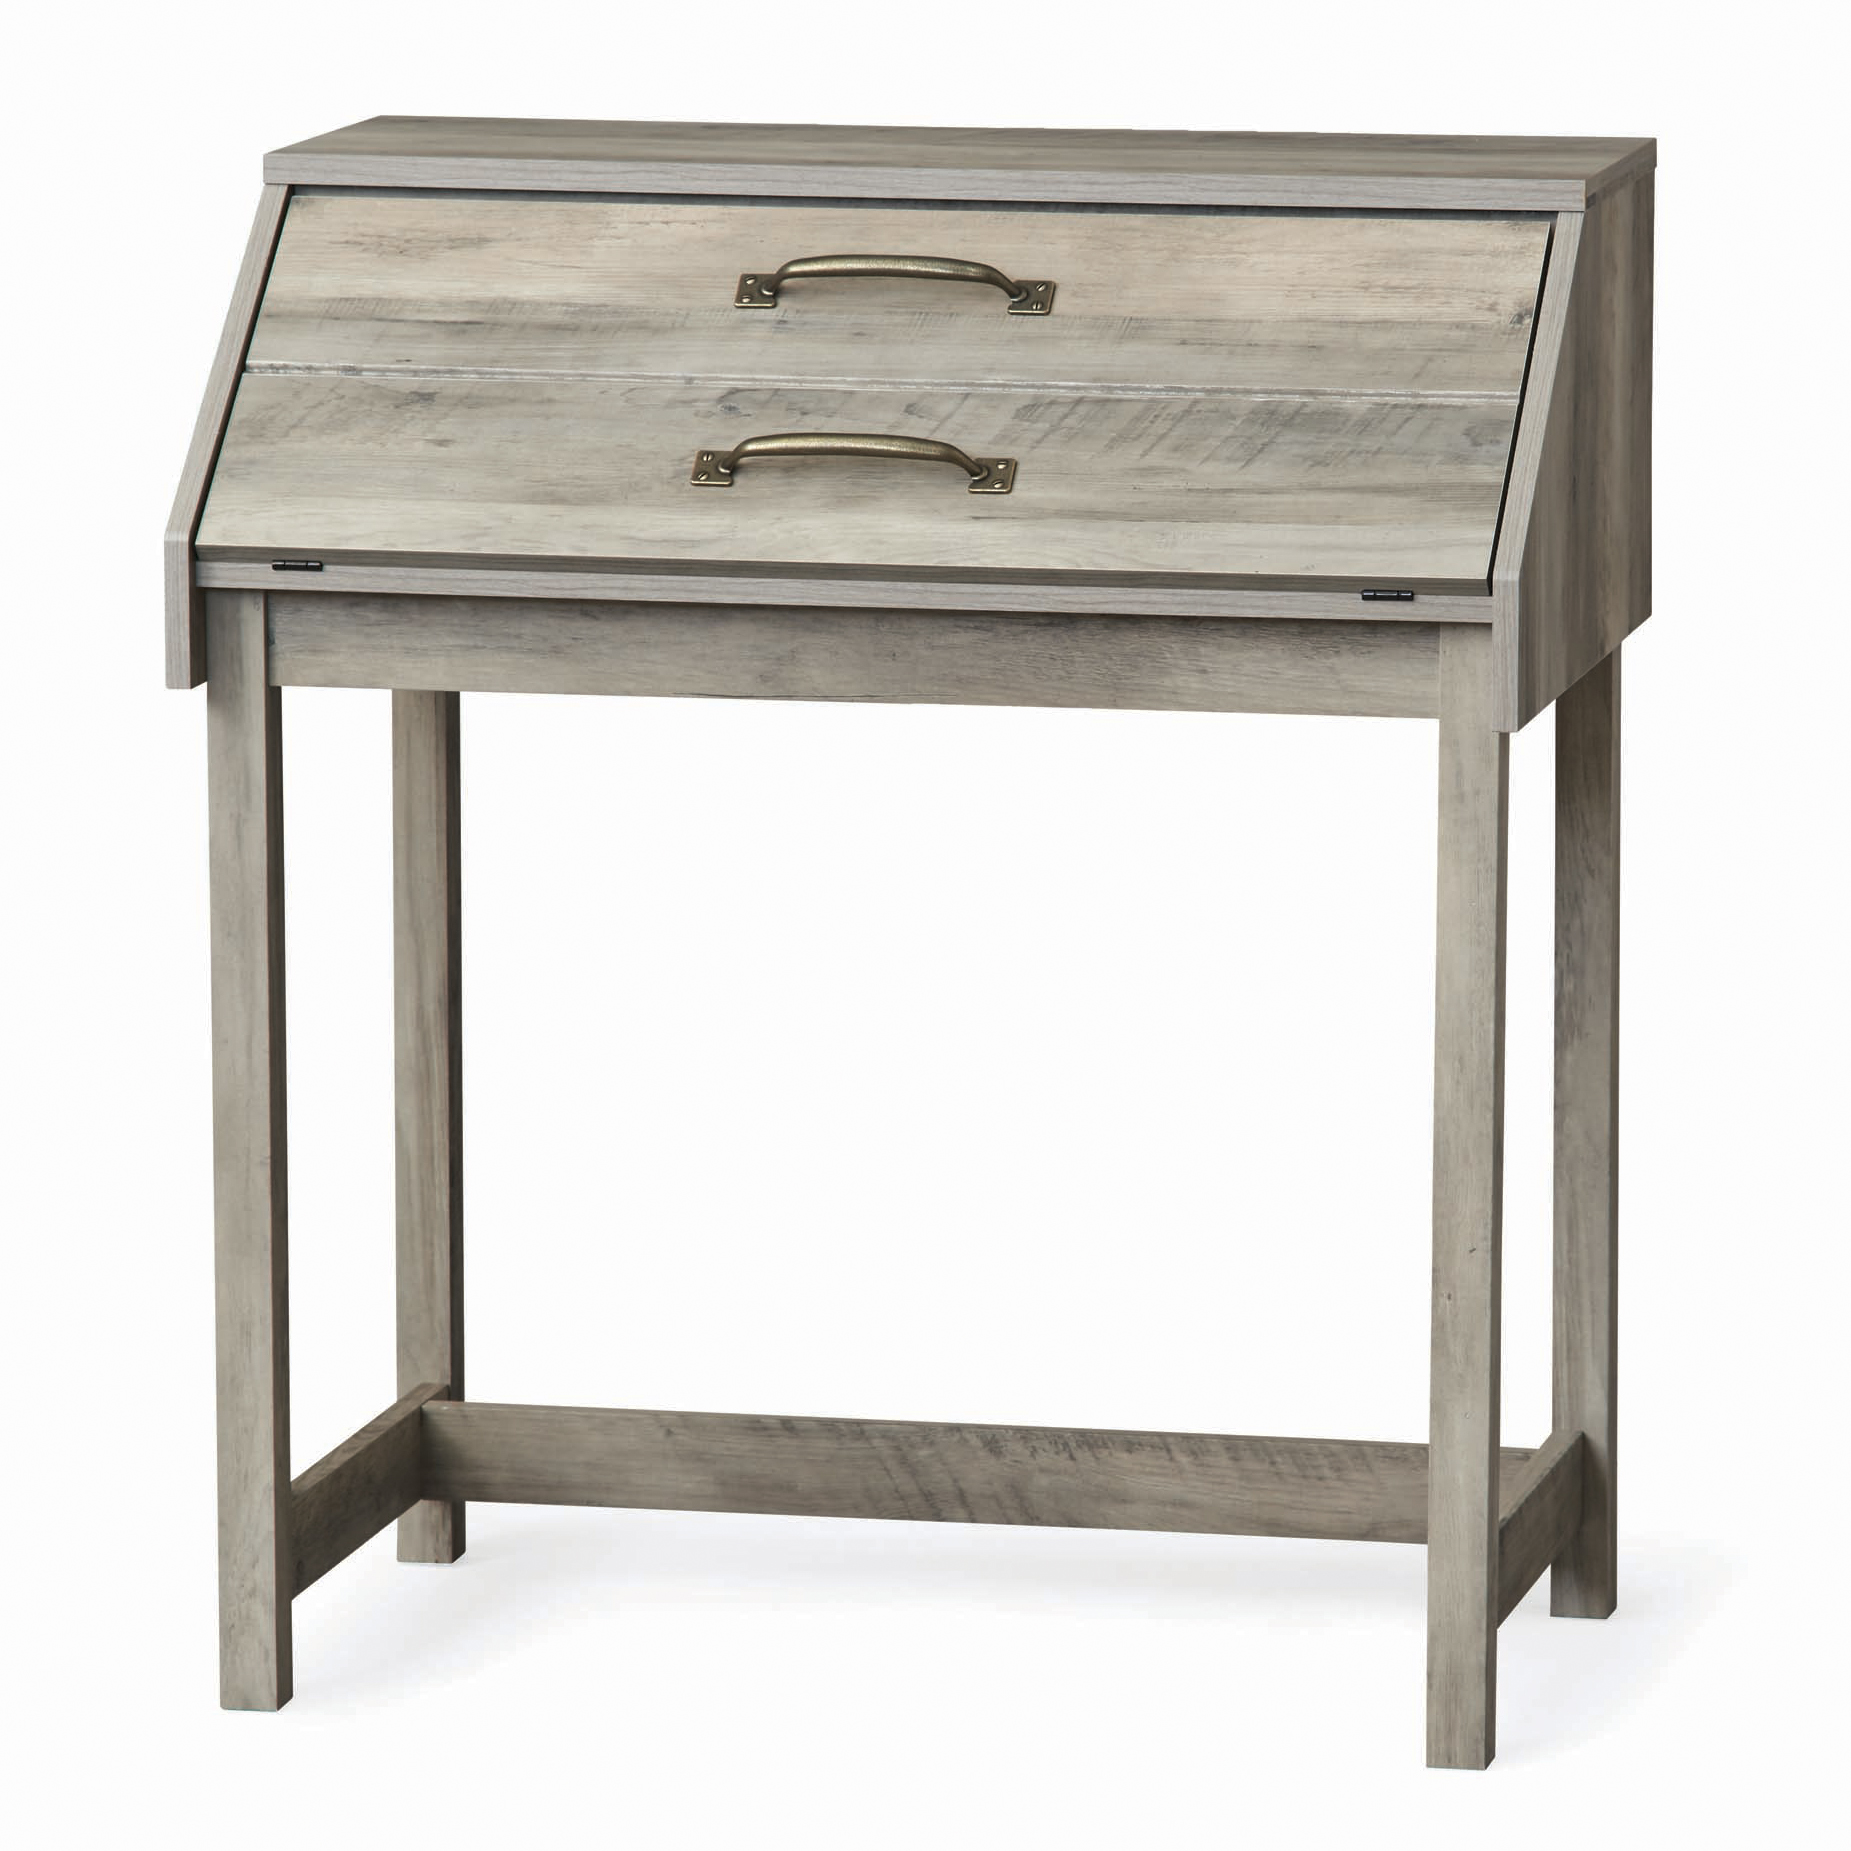 better homes gardens modern farmhouse secretary desk rustic gray and accent table finish high end sofa side ikea marble best home decor ping websites woodworking plans counter